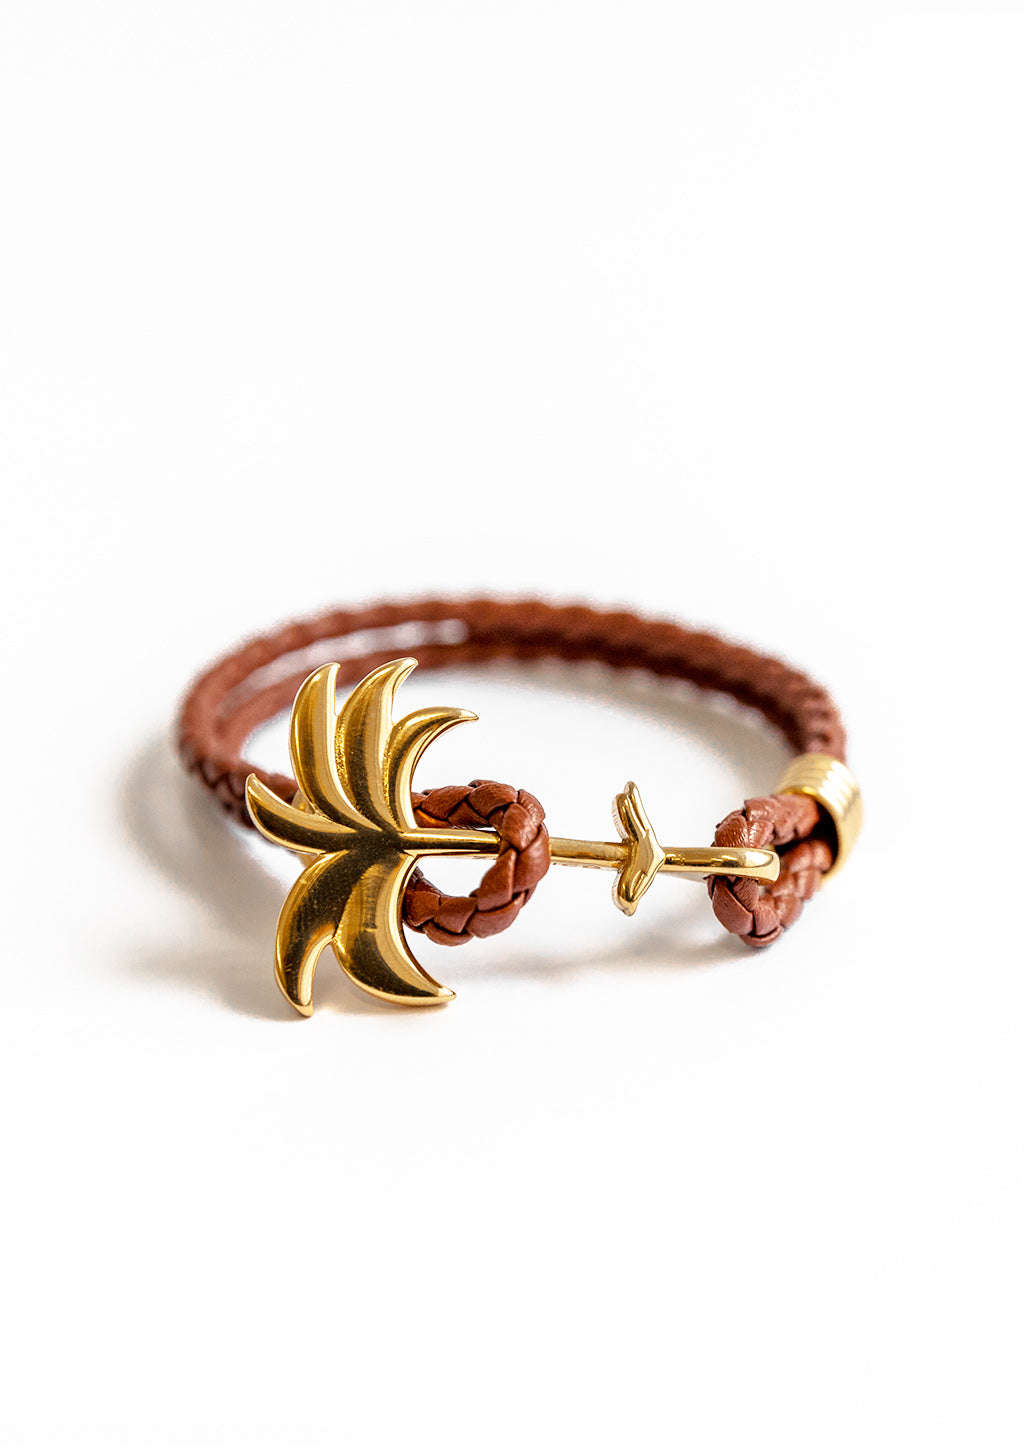 The Palm Band anchor bracelet - Duo Pack